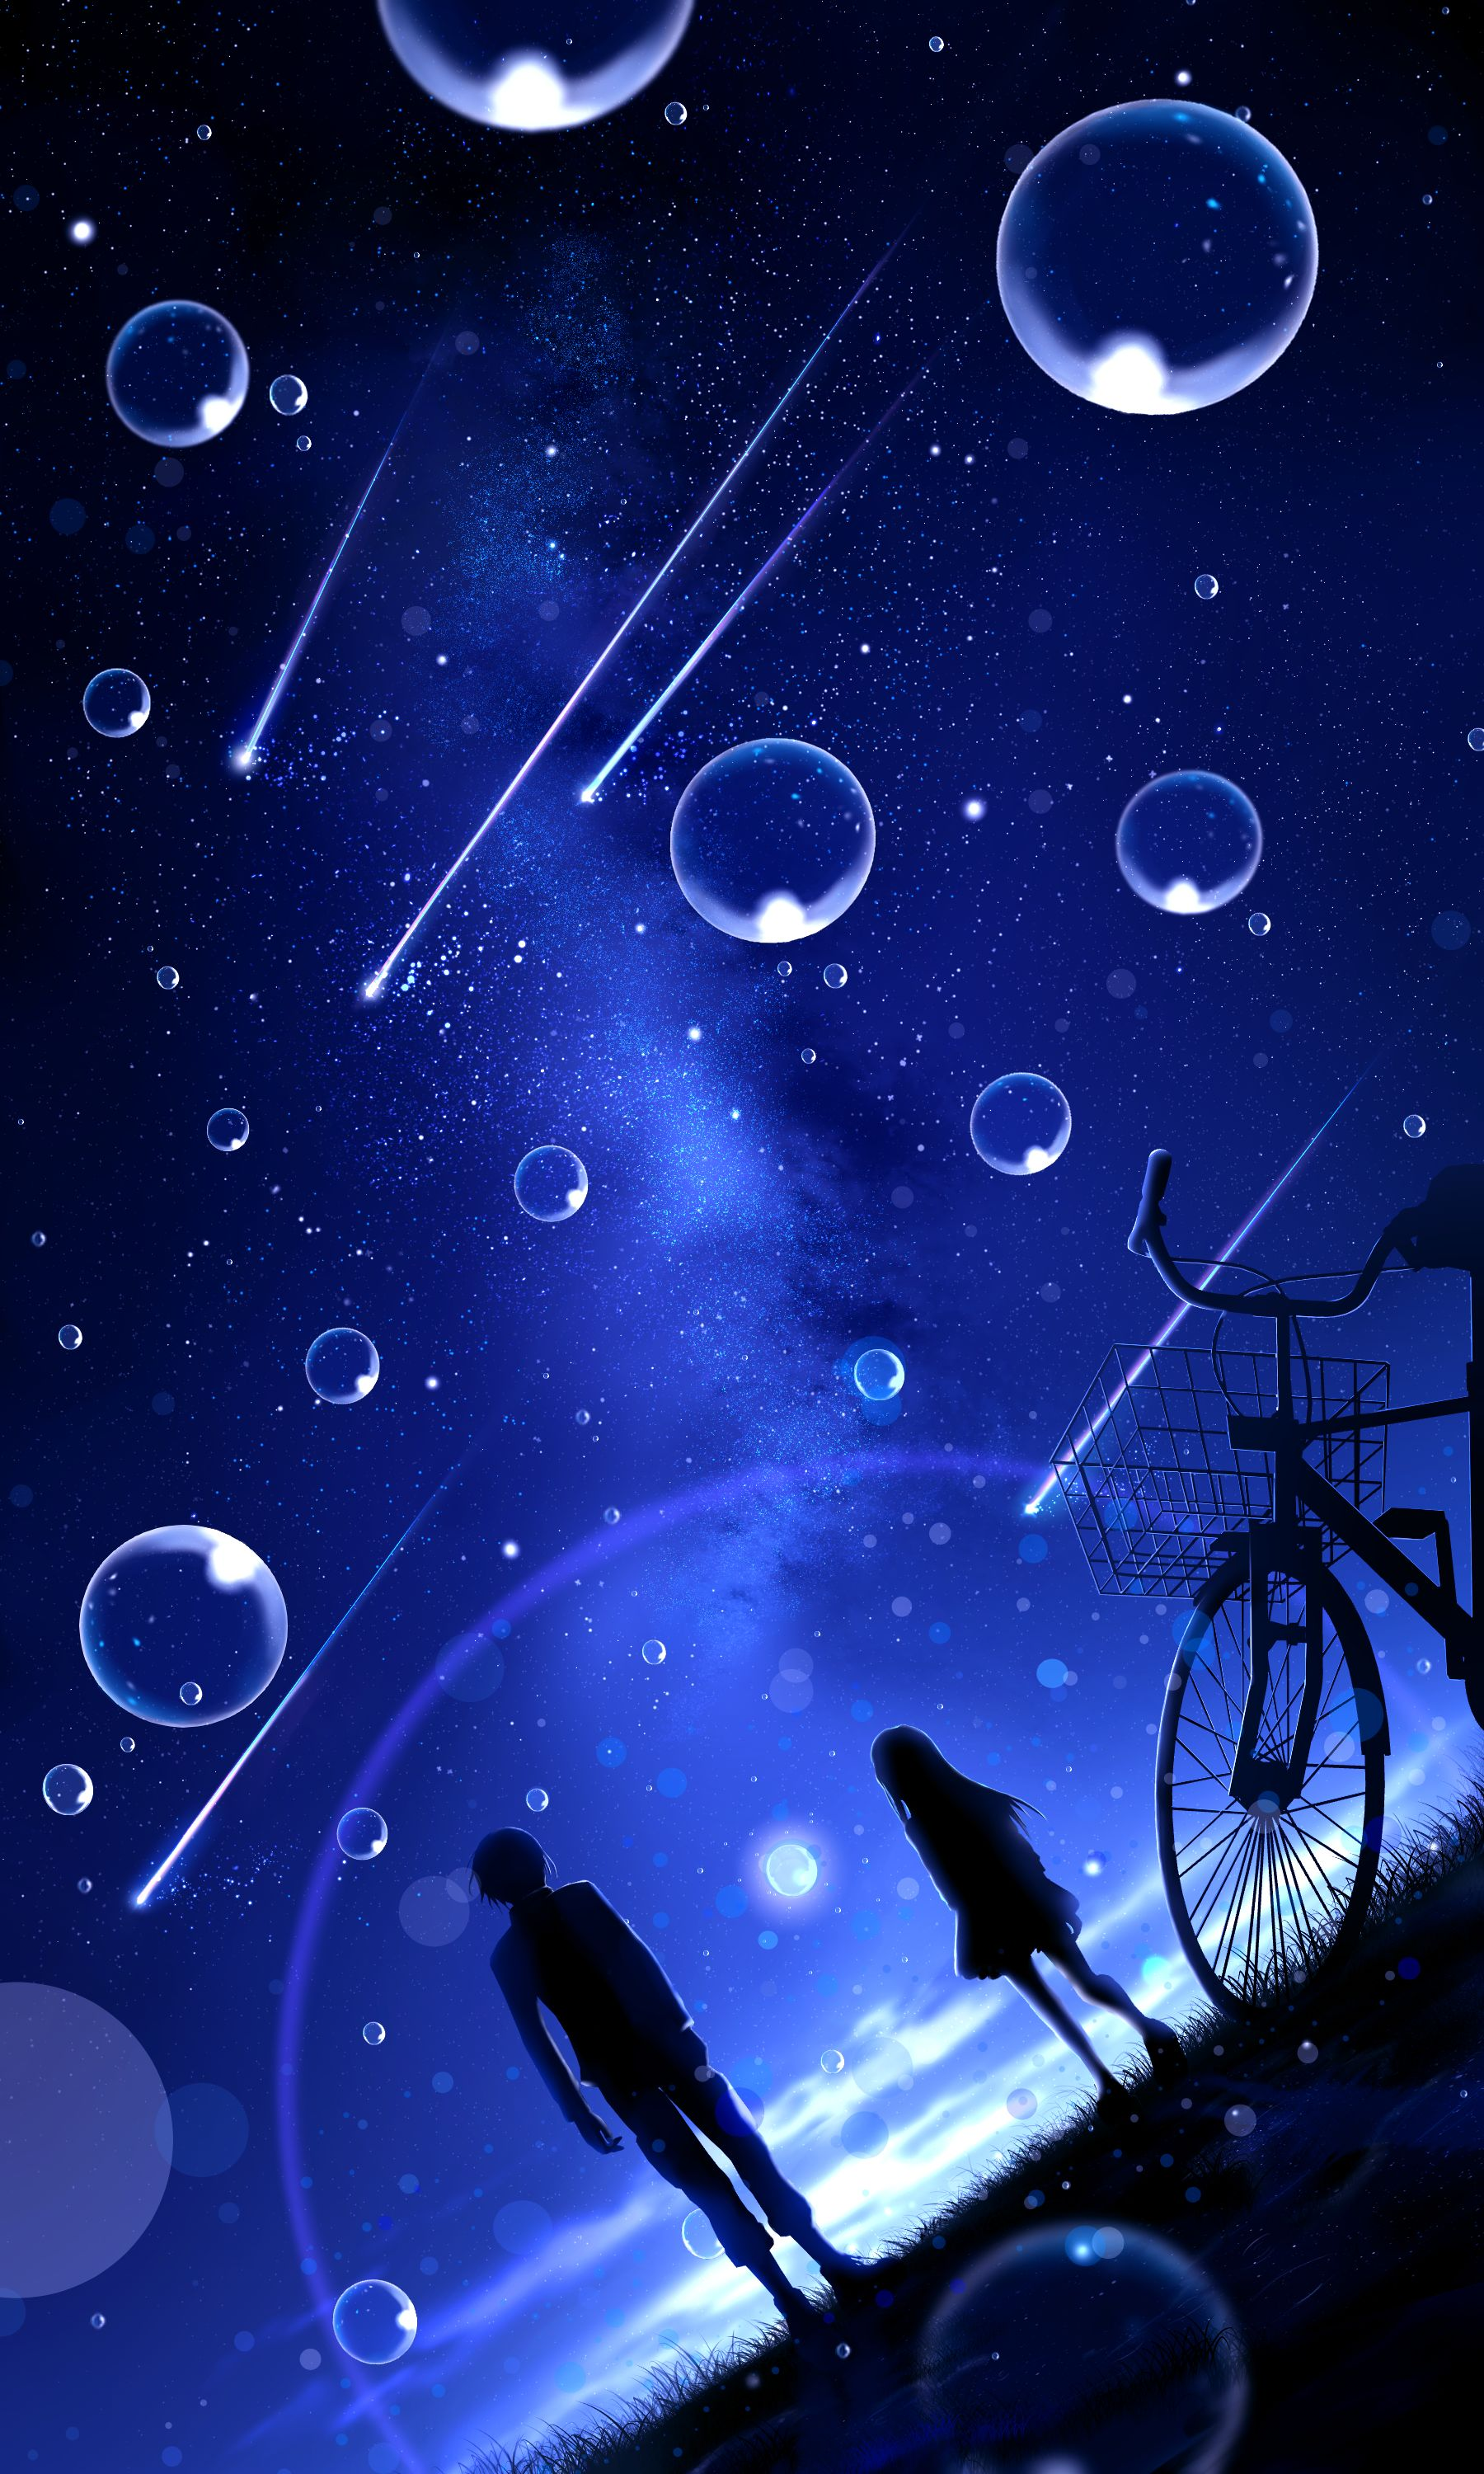 104610 download wallpaper Art, Night, Starry Sky, Silhouettes, Meteora, Meteors, Bubbles screensavers and pictures for free